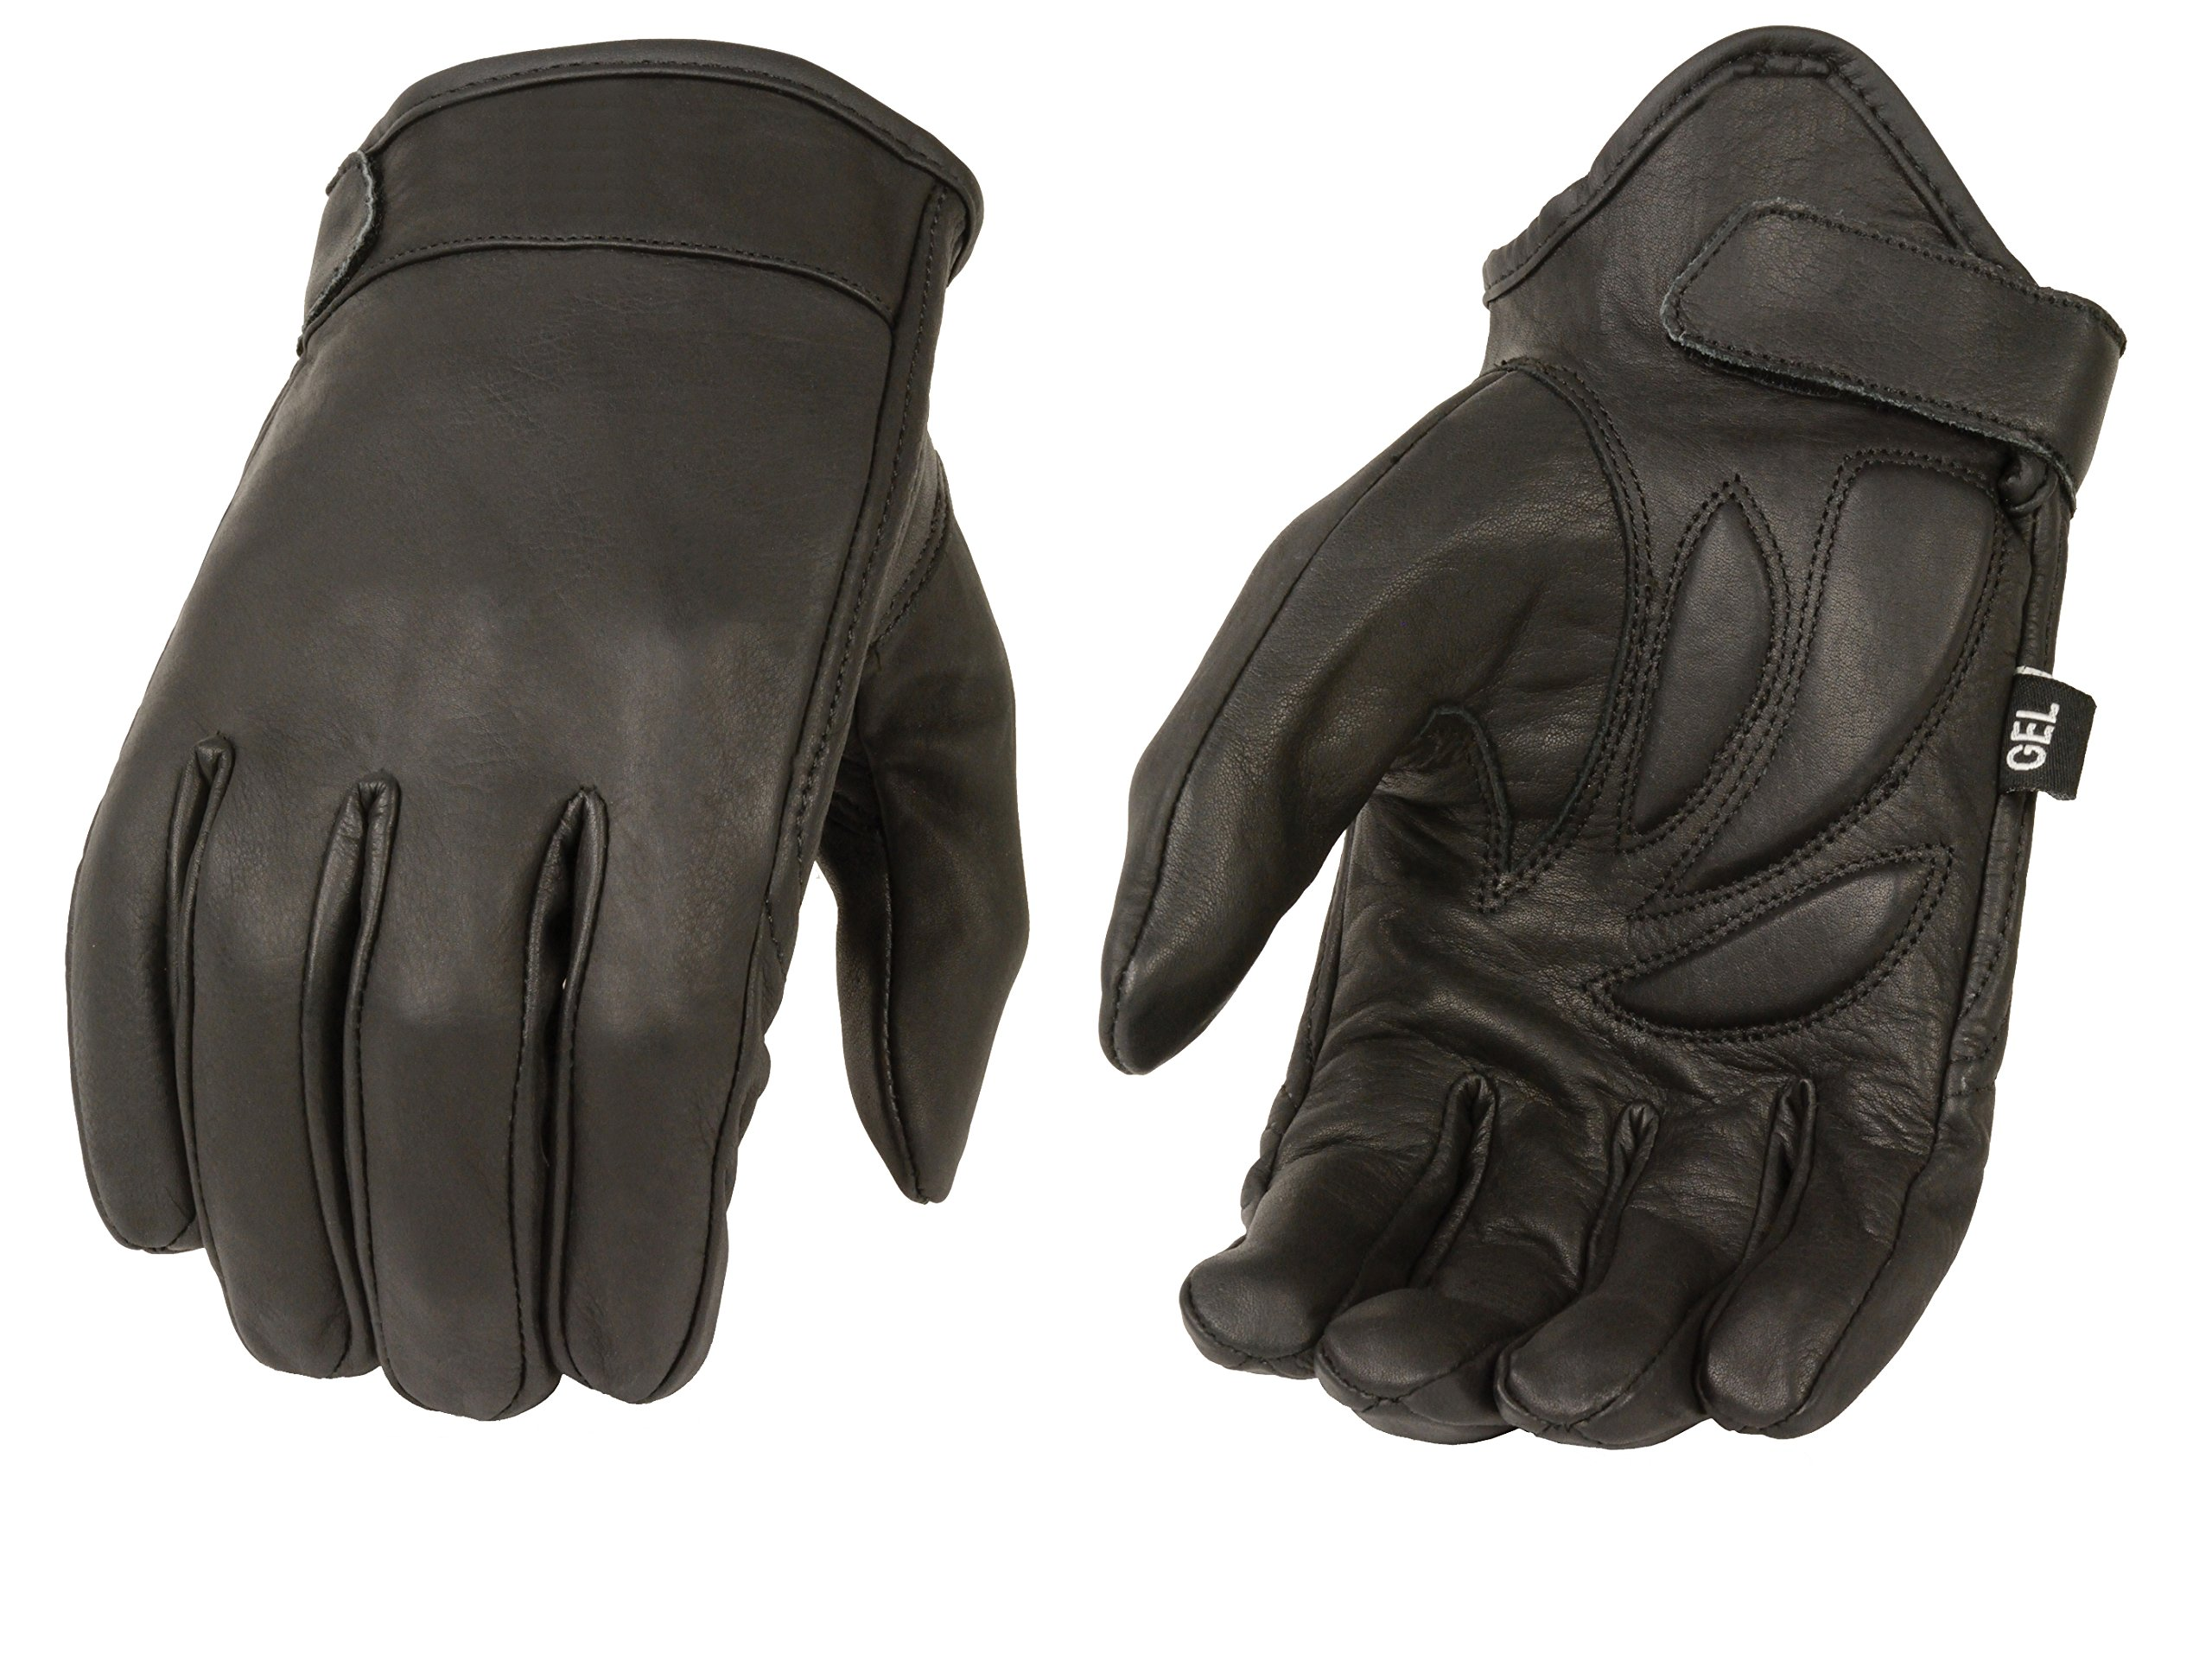 Milwaukee MG7510-BLK-L Men's Summer Cruising Gloves (Black, Large) by Milwaukee